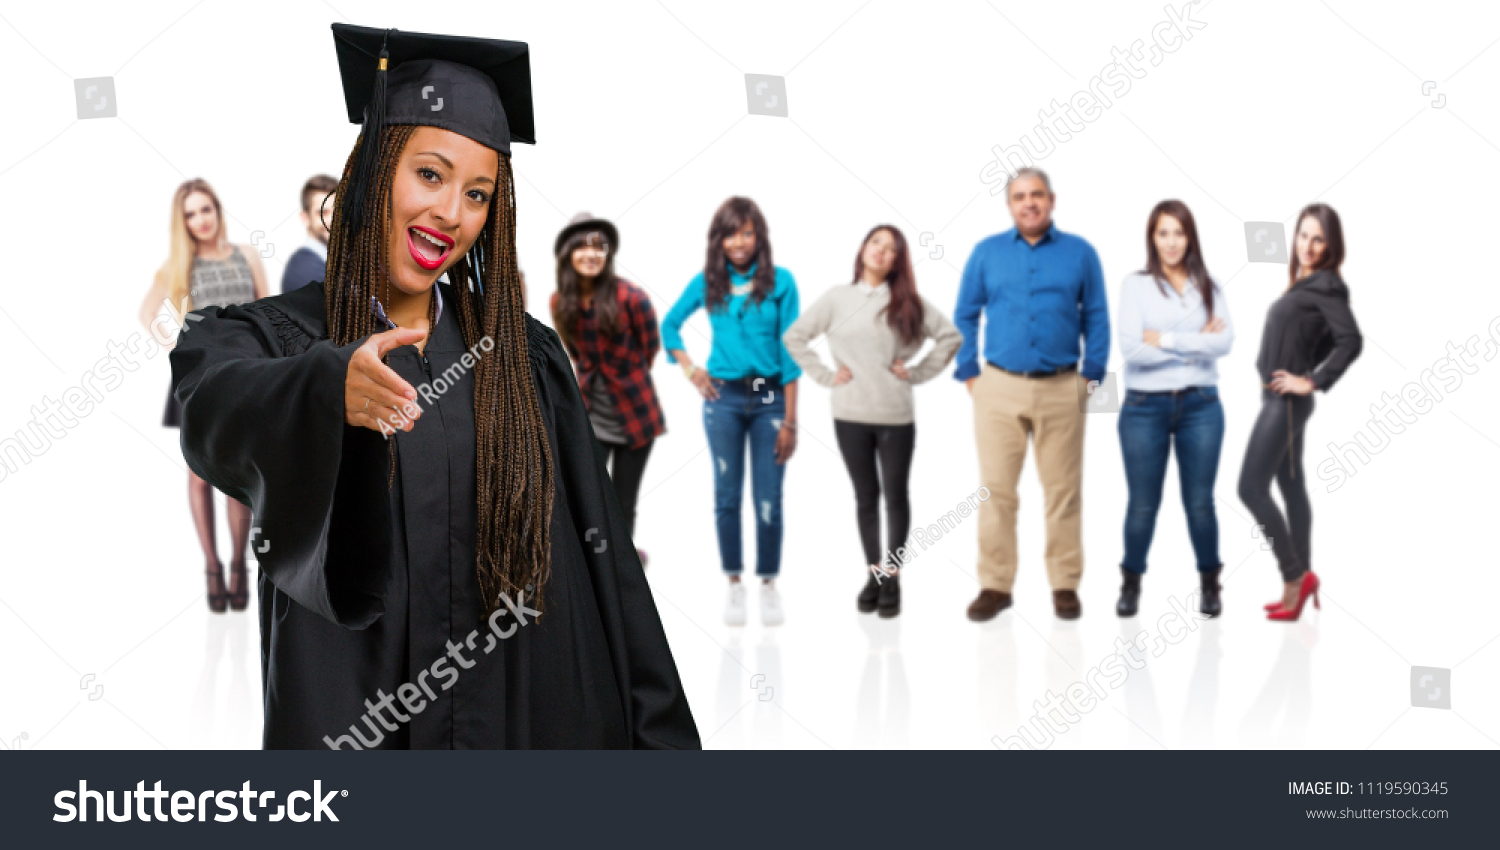 Young graduated black woman wearing braids stock photo royalty free young graduated black woman wearing braids reaching out to greet someone or gesturing to help m4hsunfo